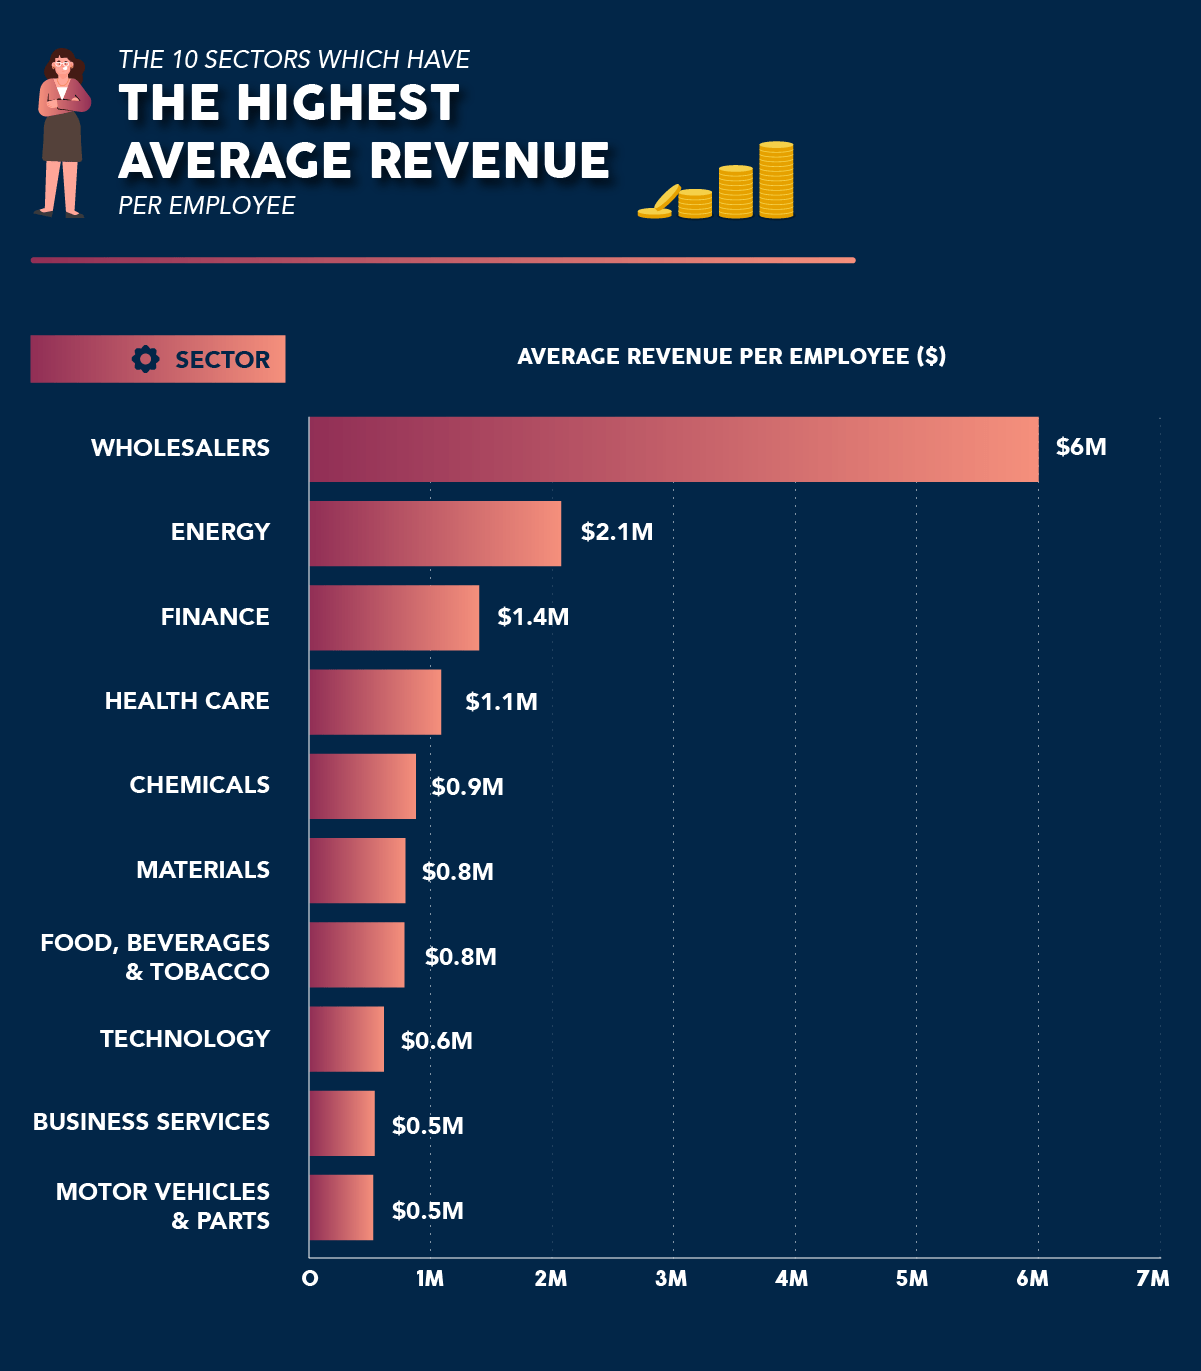 Top sectors by revenue per employee